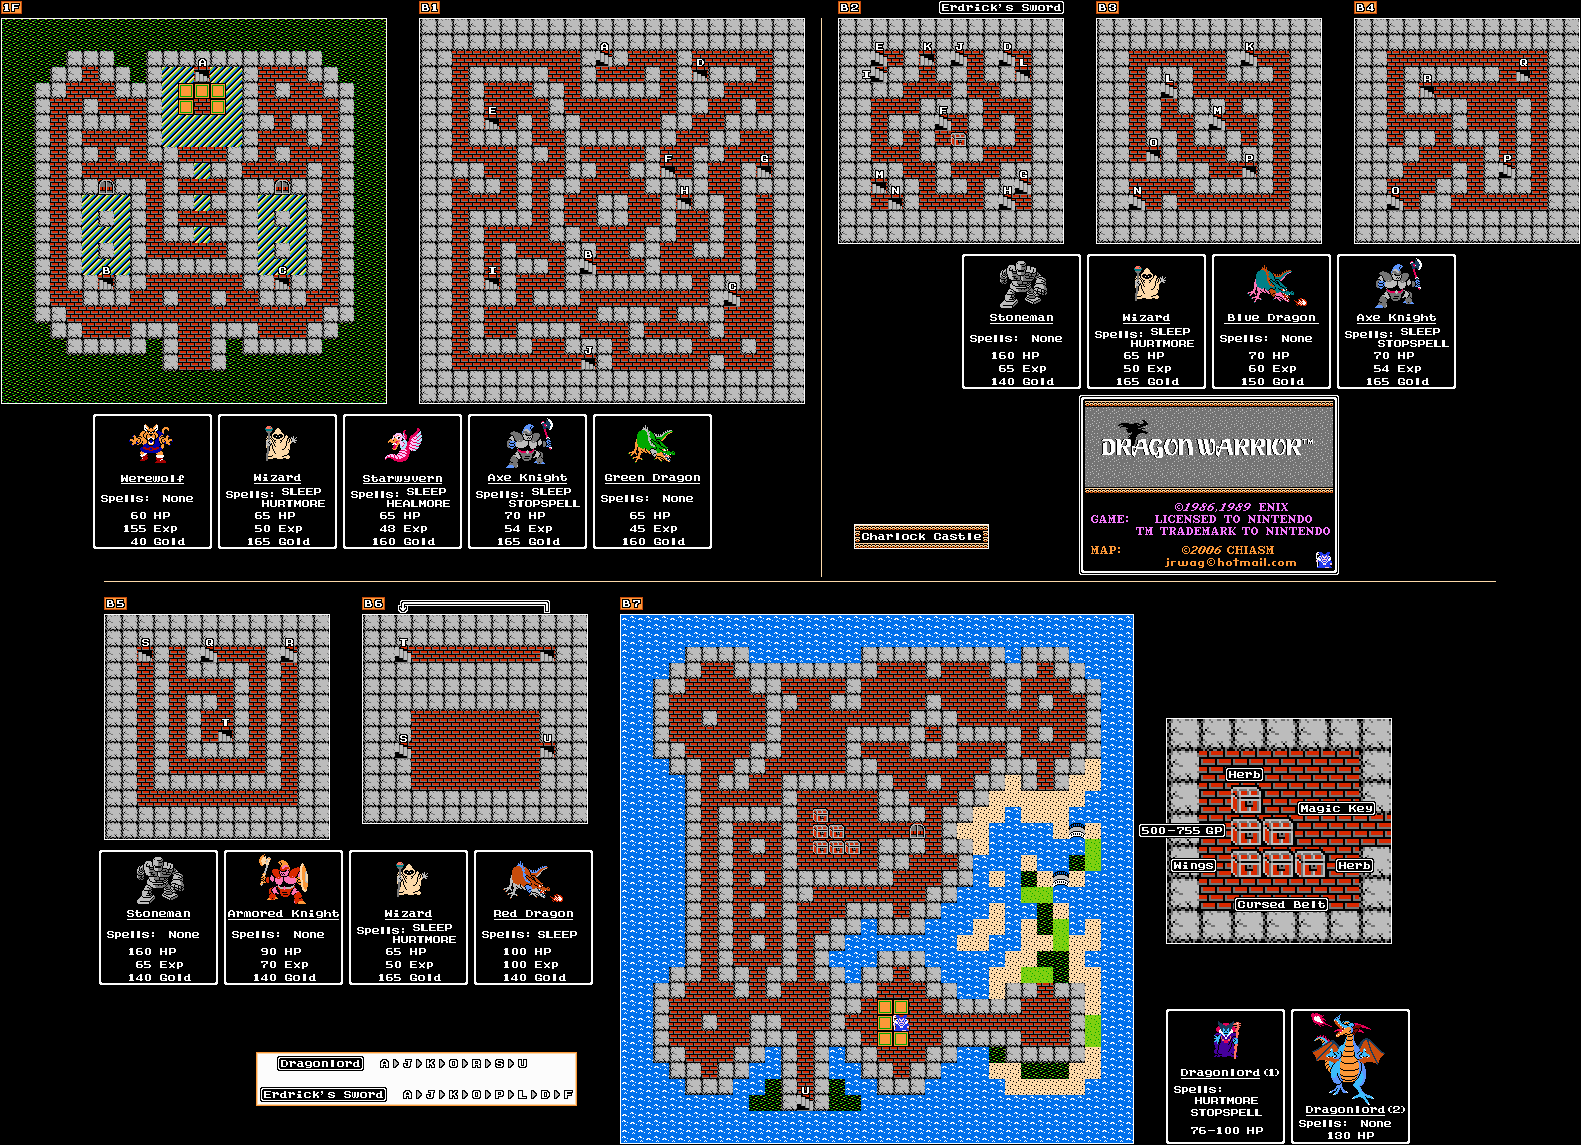 File:Dragon Warrior - NES - Map - Charlock Castle.png ... on dragon quest item map, teenage mutant ninja turtles map, call of duty map, indiana jones map, dragon quest ix map, dragon quest 1 map, dragon cave map, legacy of the wizard map, secret of mana map, skyrim dragon map, the guardian legend map, black dragon lair map, dragon quest 8 map, milon's secret castle map, dragon quest vi map, dragon quest 2 map, dragon quest 3 map, back to the future map, river city ransom map, dragon quest 4,